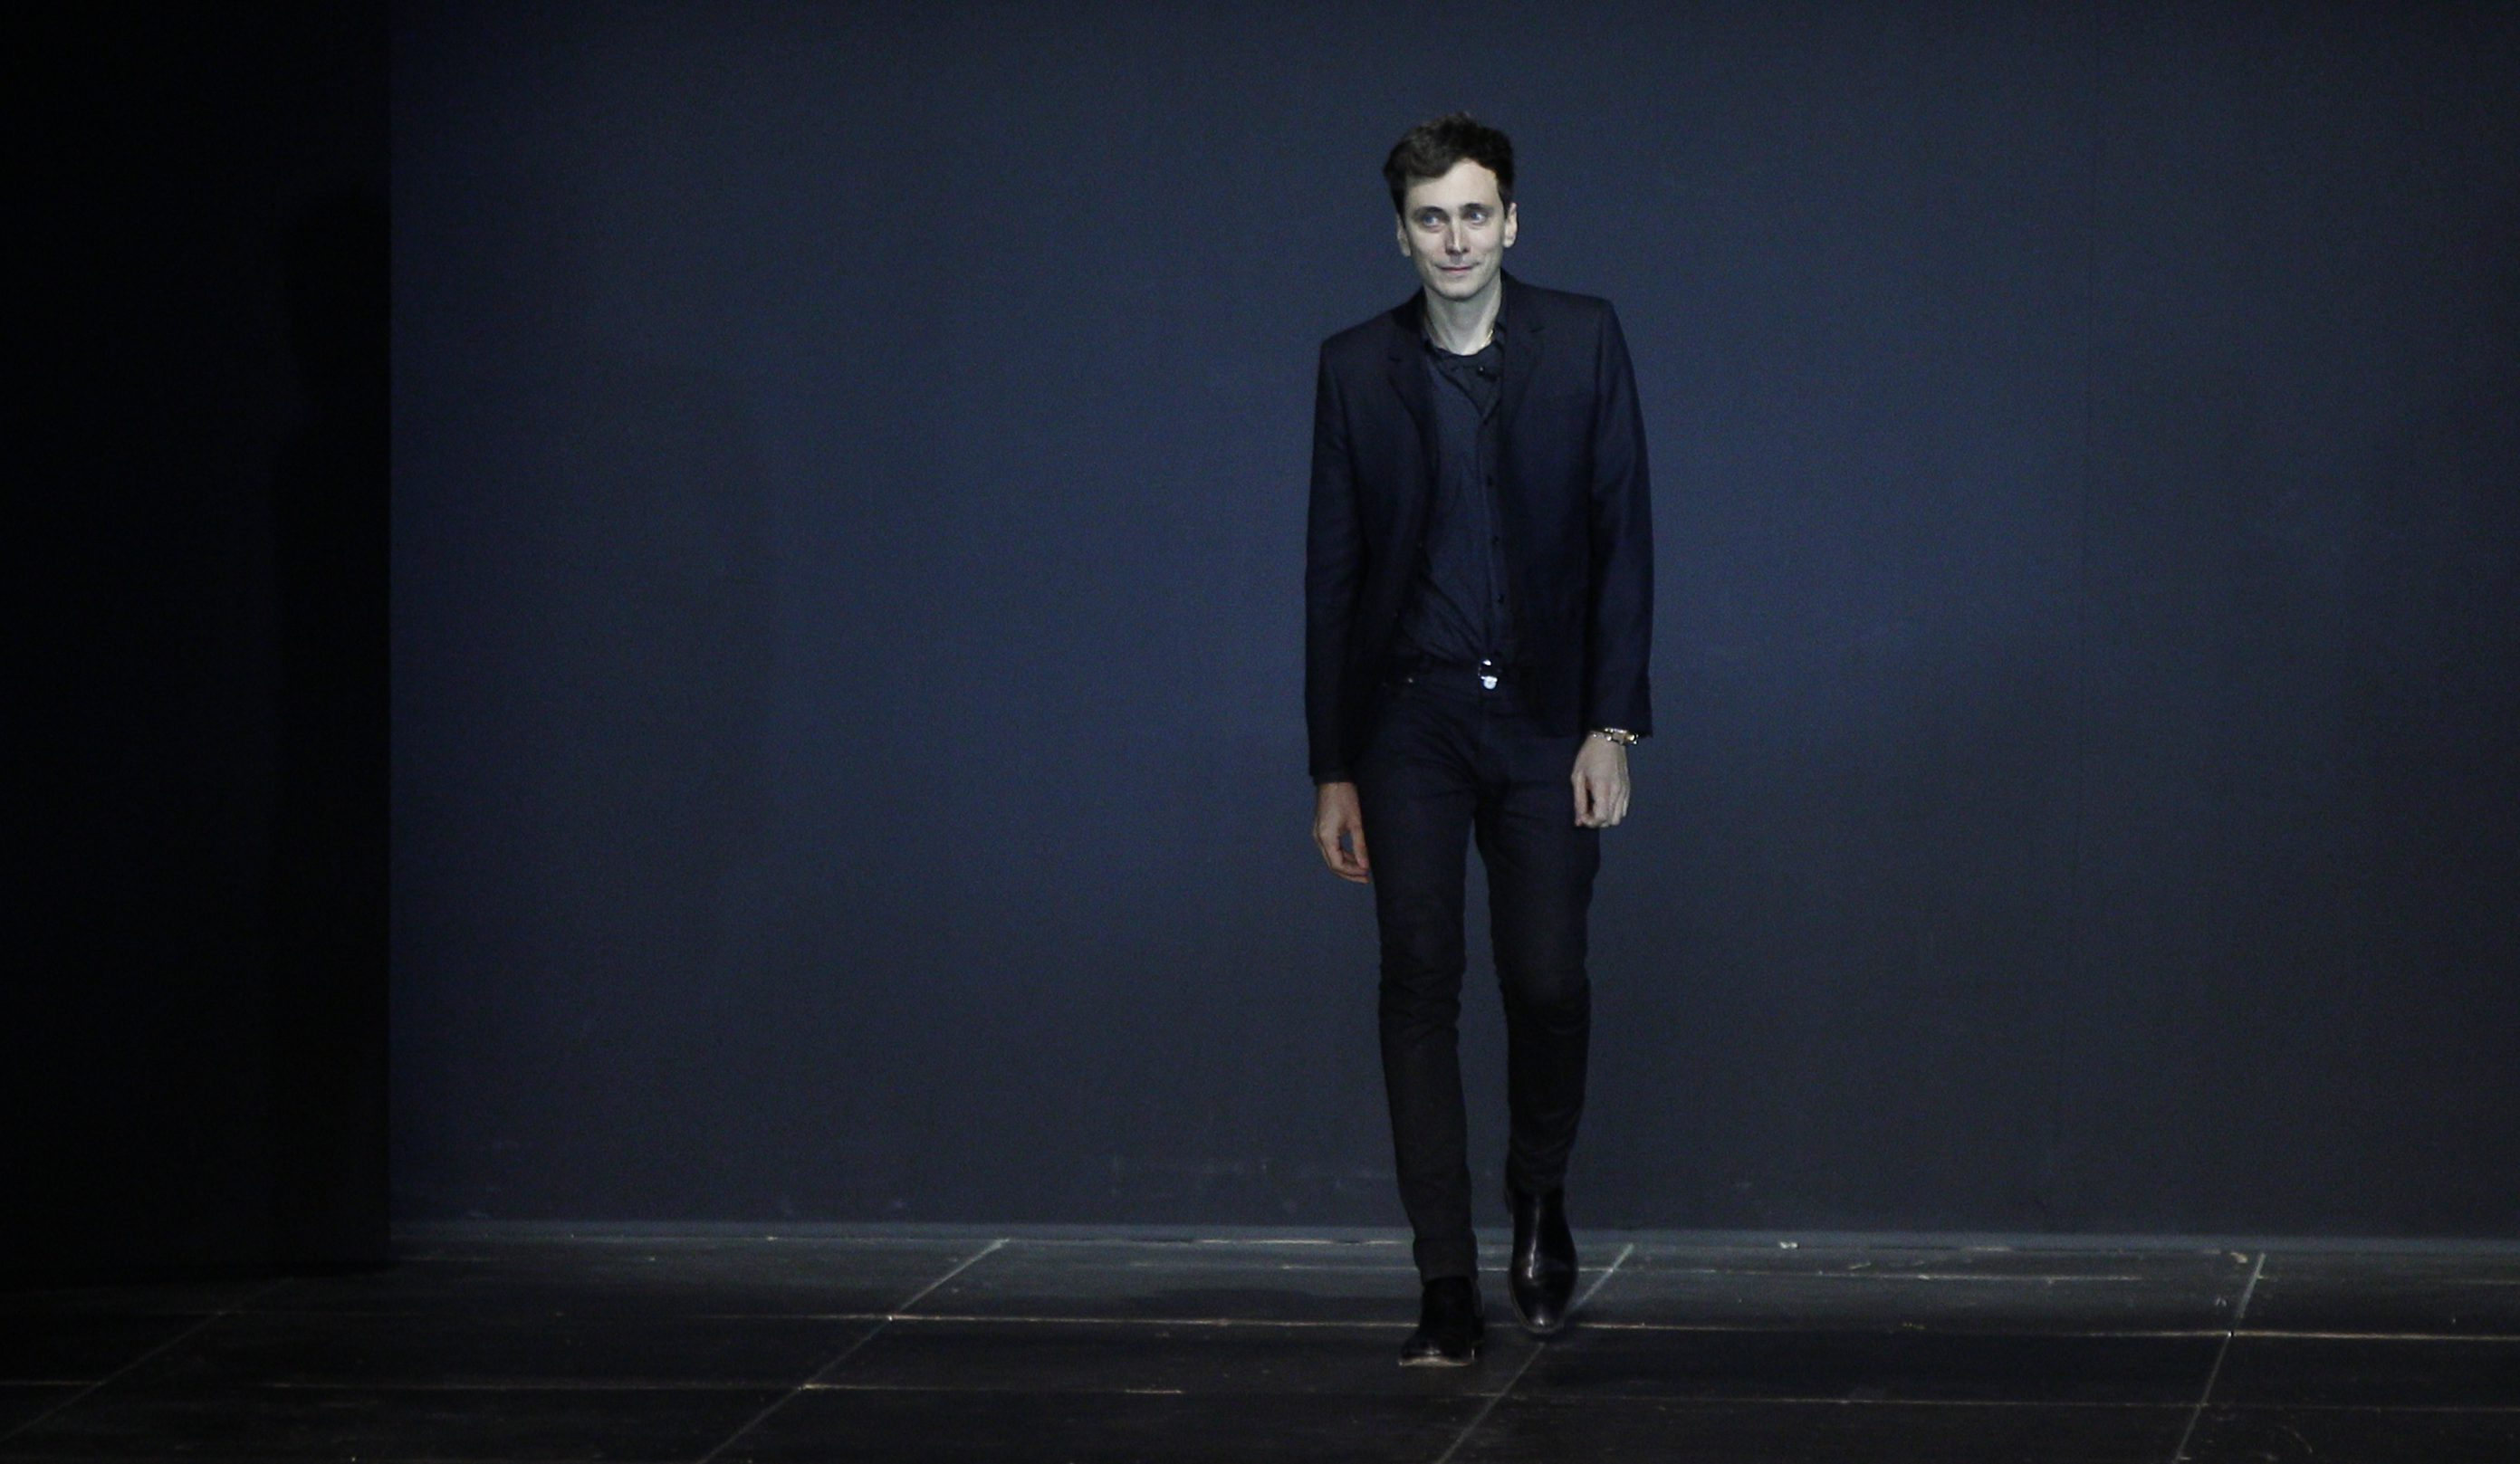 French designer Hedi Slimane appears at the end of his Spring/Summer 2013 women's ready-to-wear fashion show for French fashion house Saint Laurent Paris during Paris fashion week October 1, 2012. REUTERS/Gonzalo Fuentes (FRANCE - Tags: FASHION) - LR1E8A11M75HB